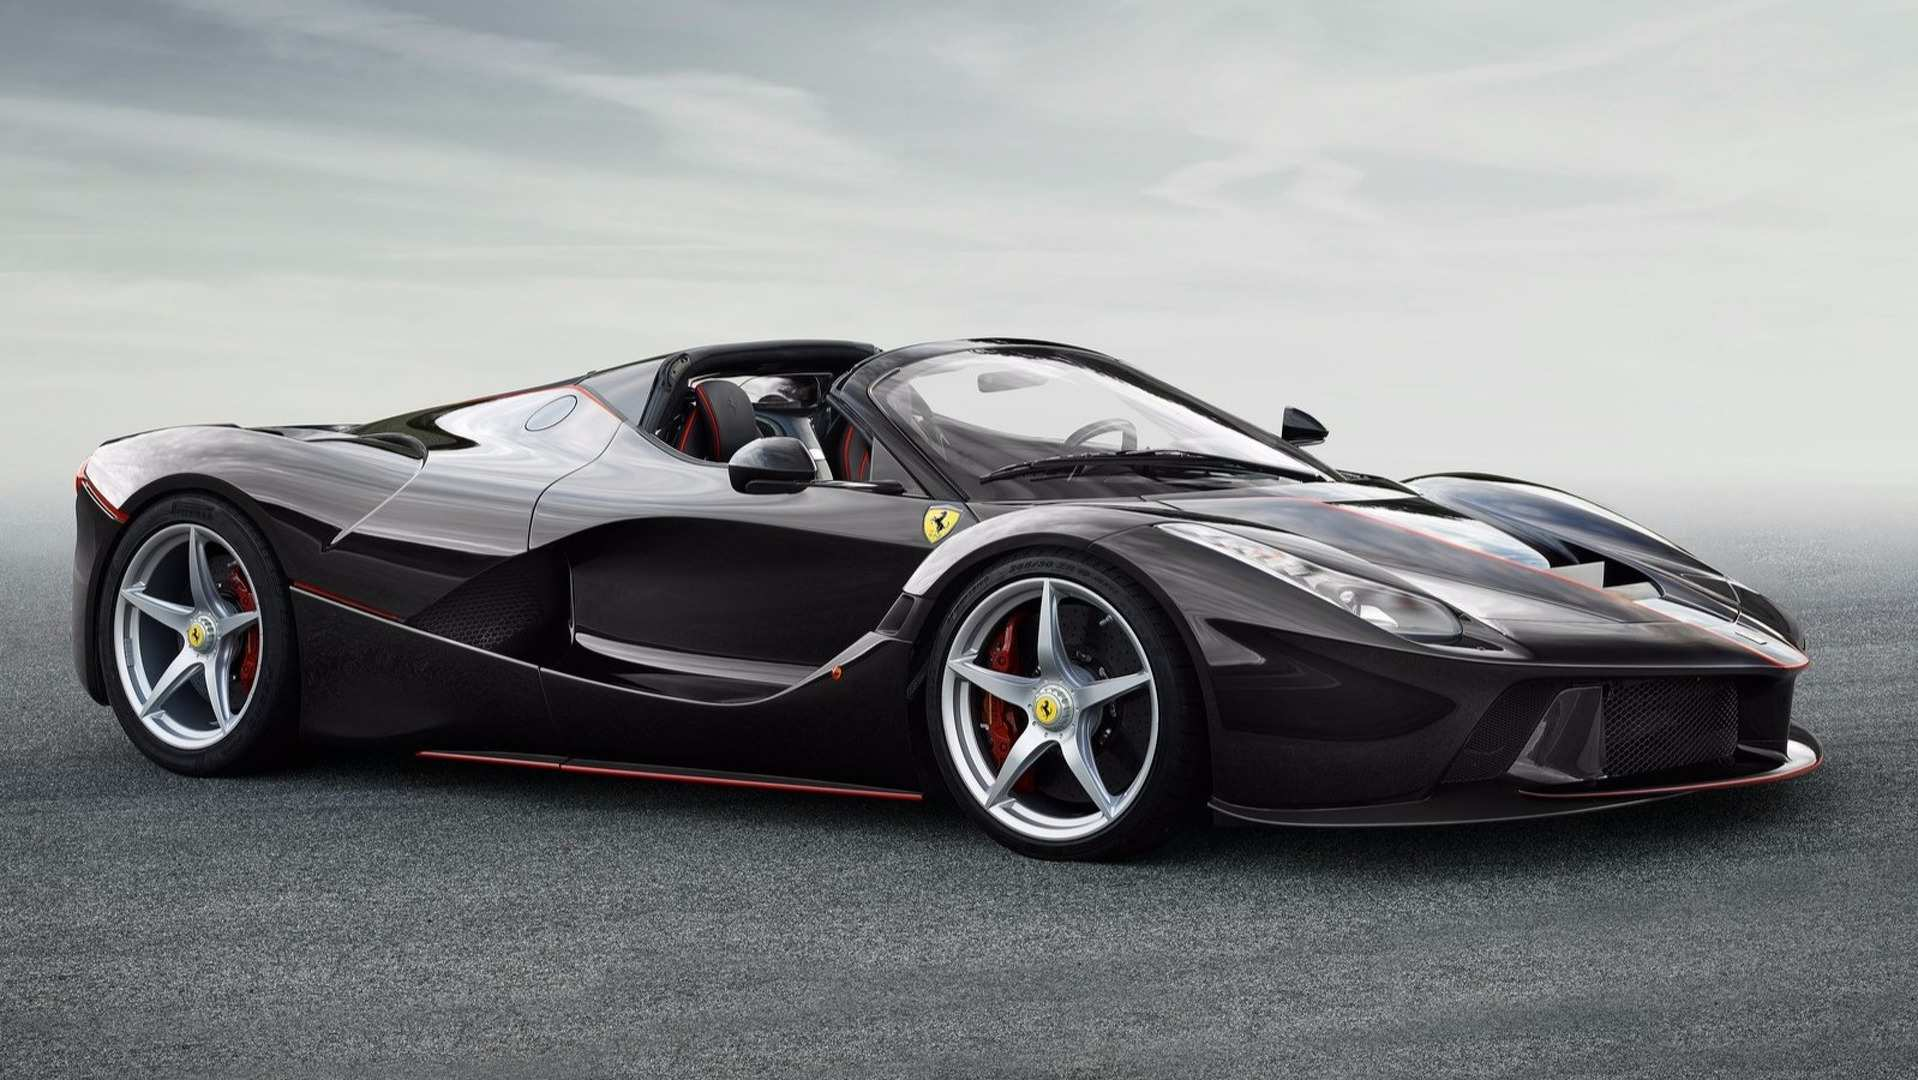 30 New 2020 Ferrari Cars Interior